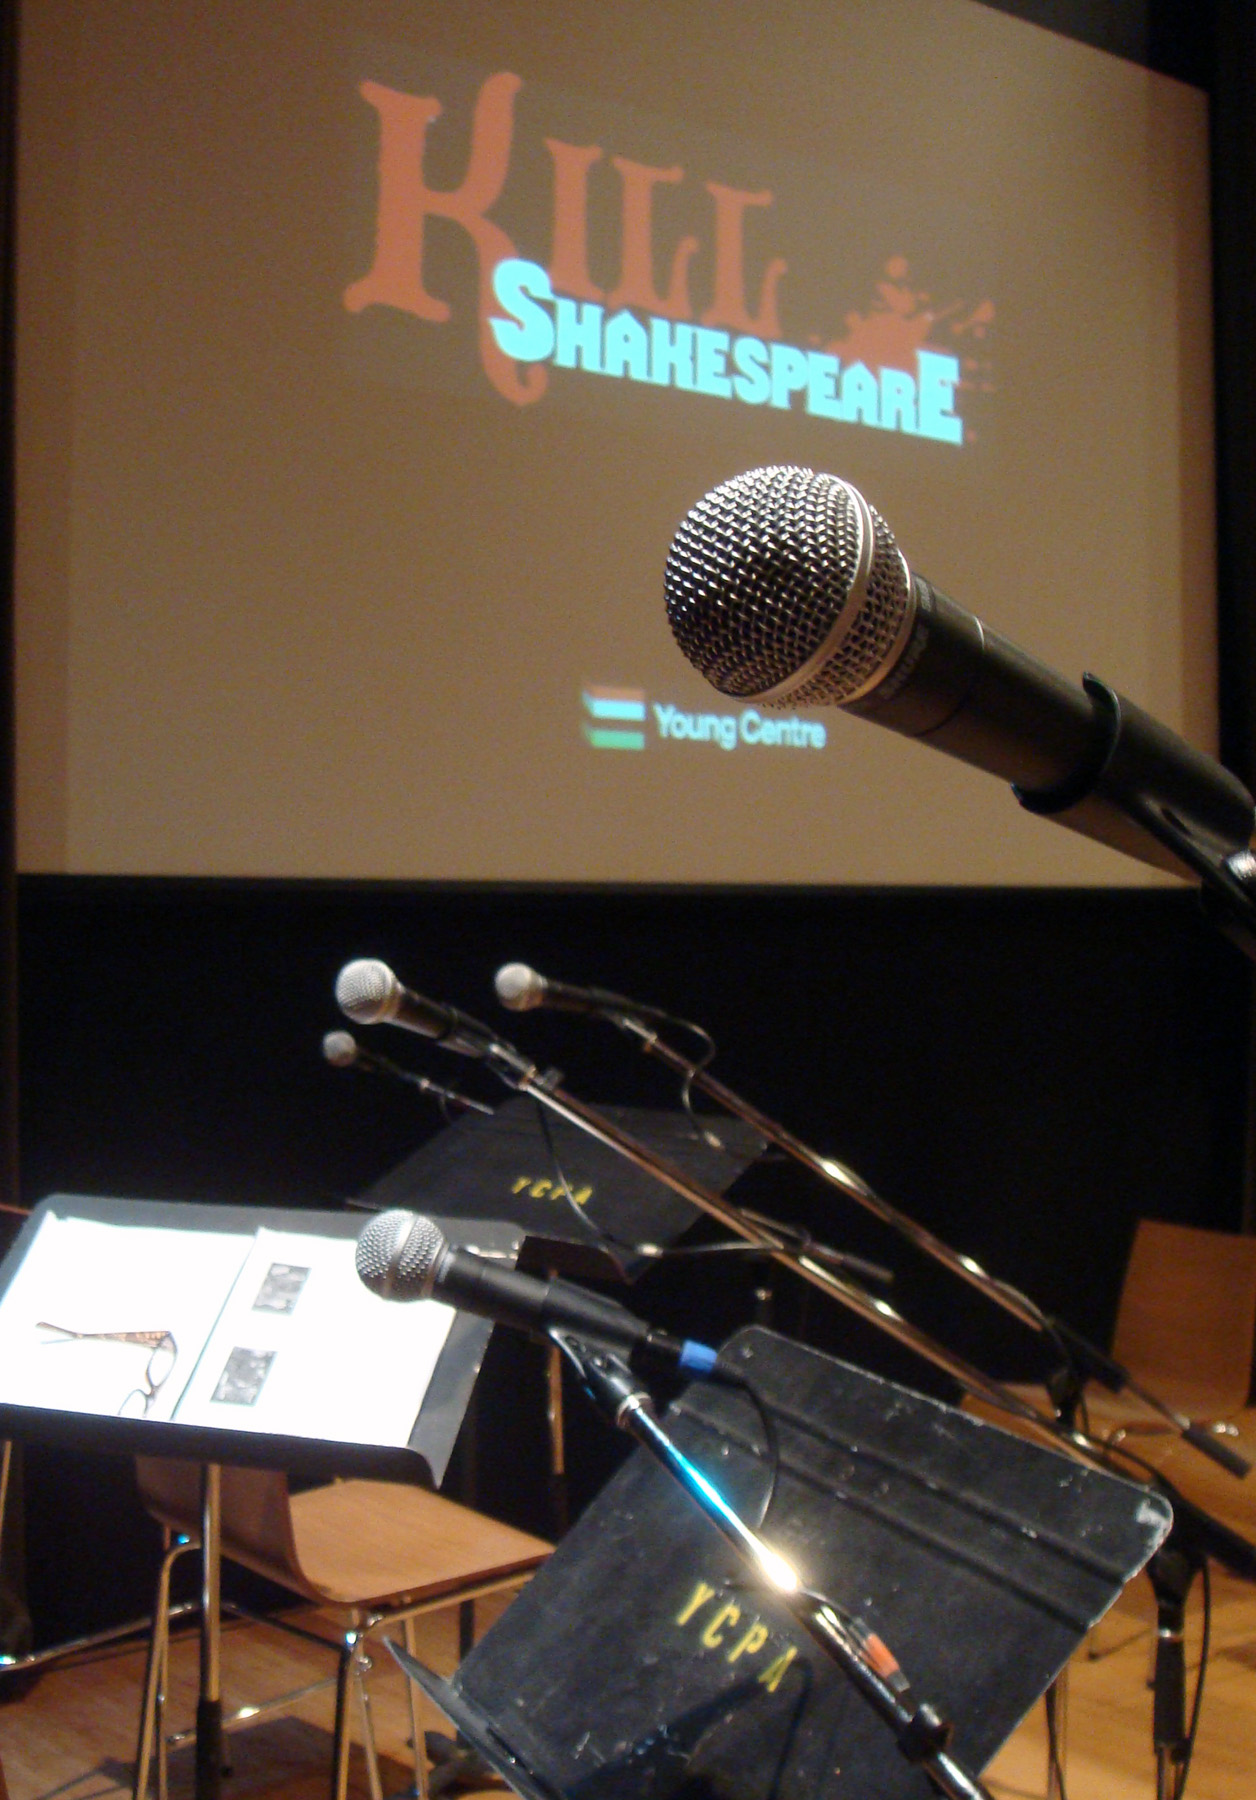 Microphone Kill Shakespeare